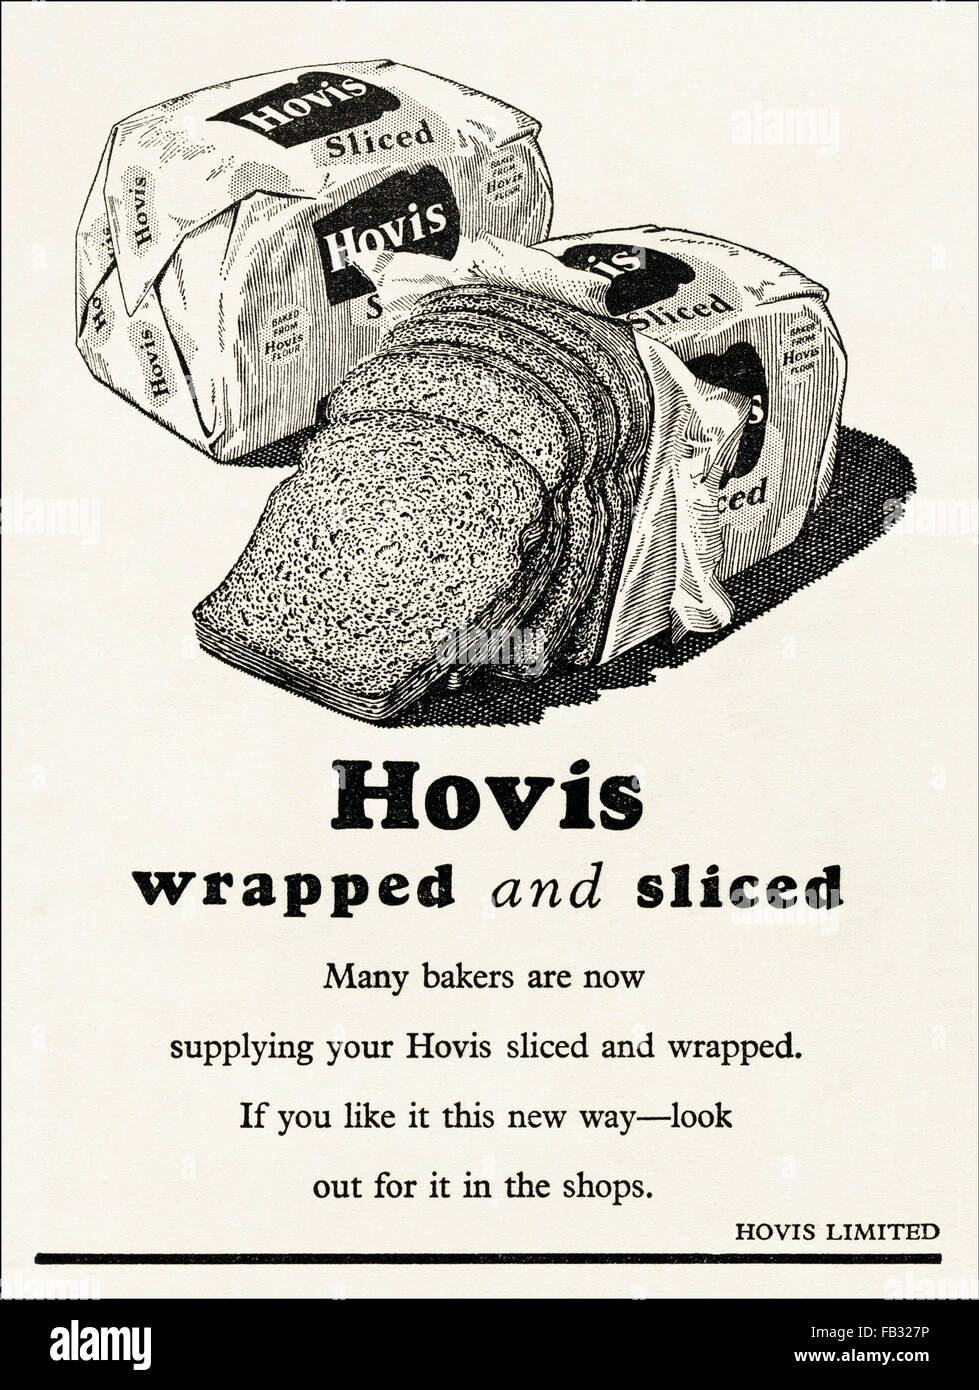 Original vintage advert from 1950s. Advertisement from 1953 advertising Hovis wrapped & sliced bread. 50s retro - Stock Image